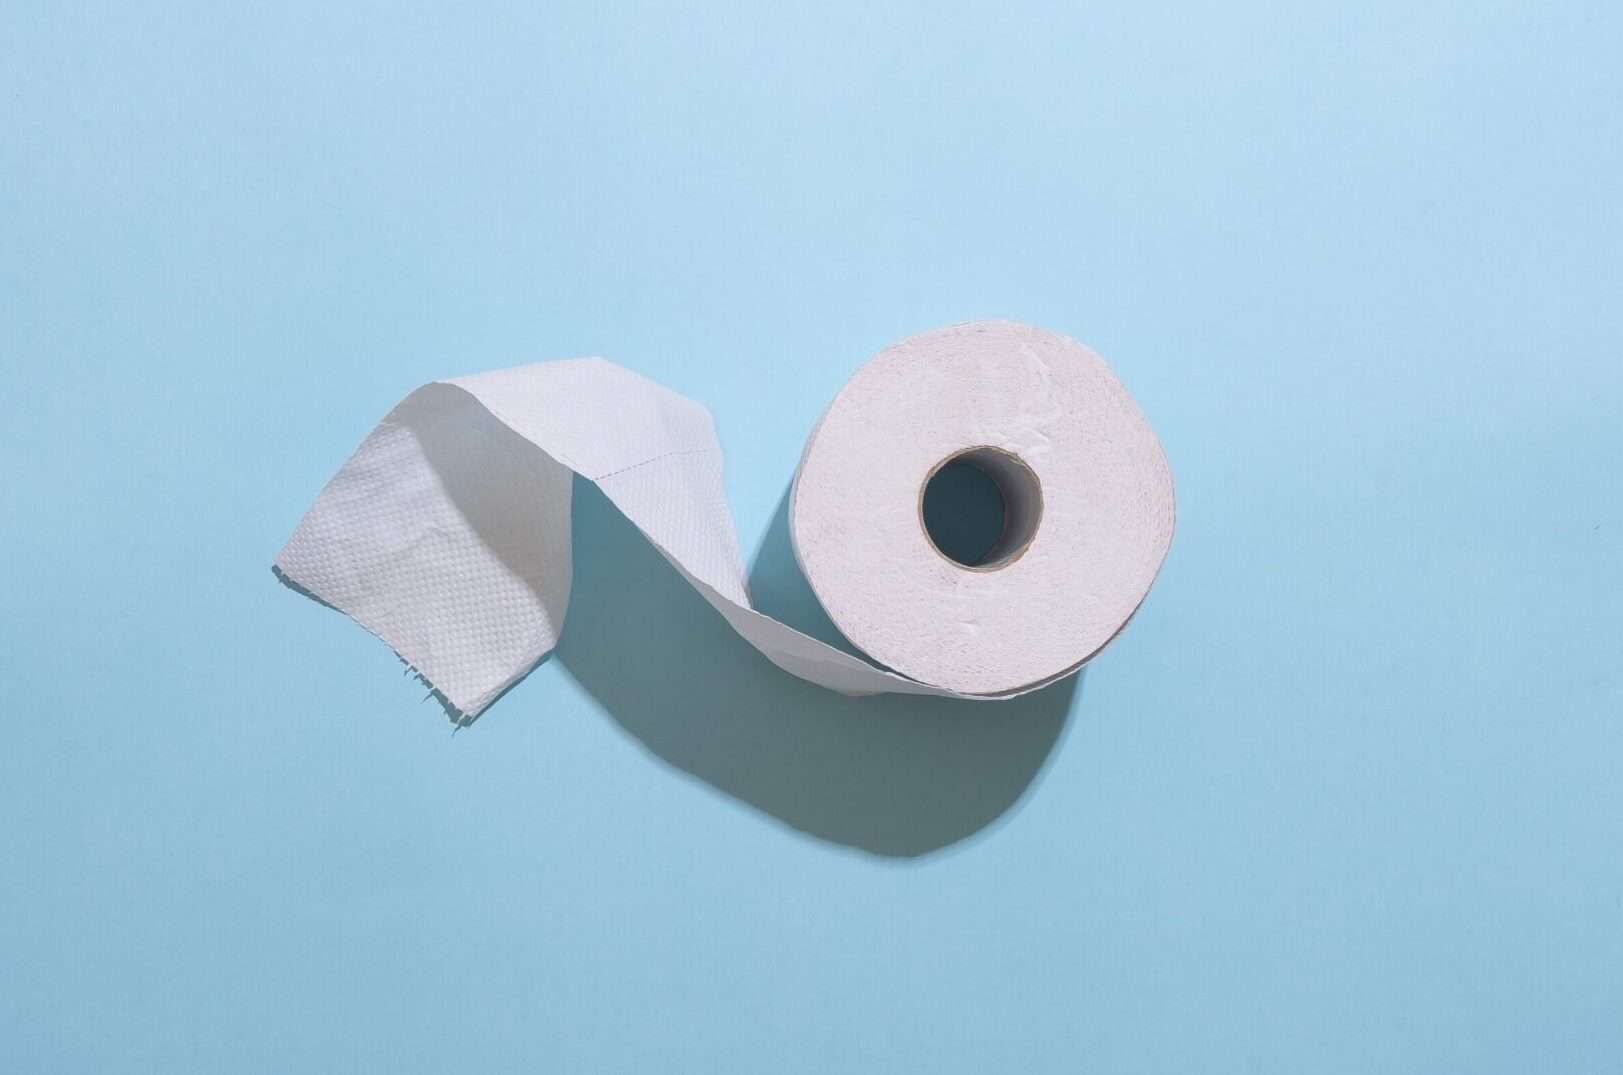 Asian Travel Inspired Toilet Paper Alternatives